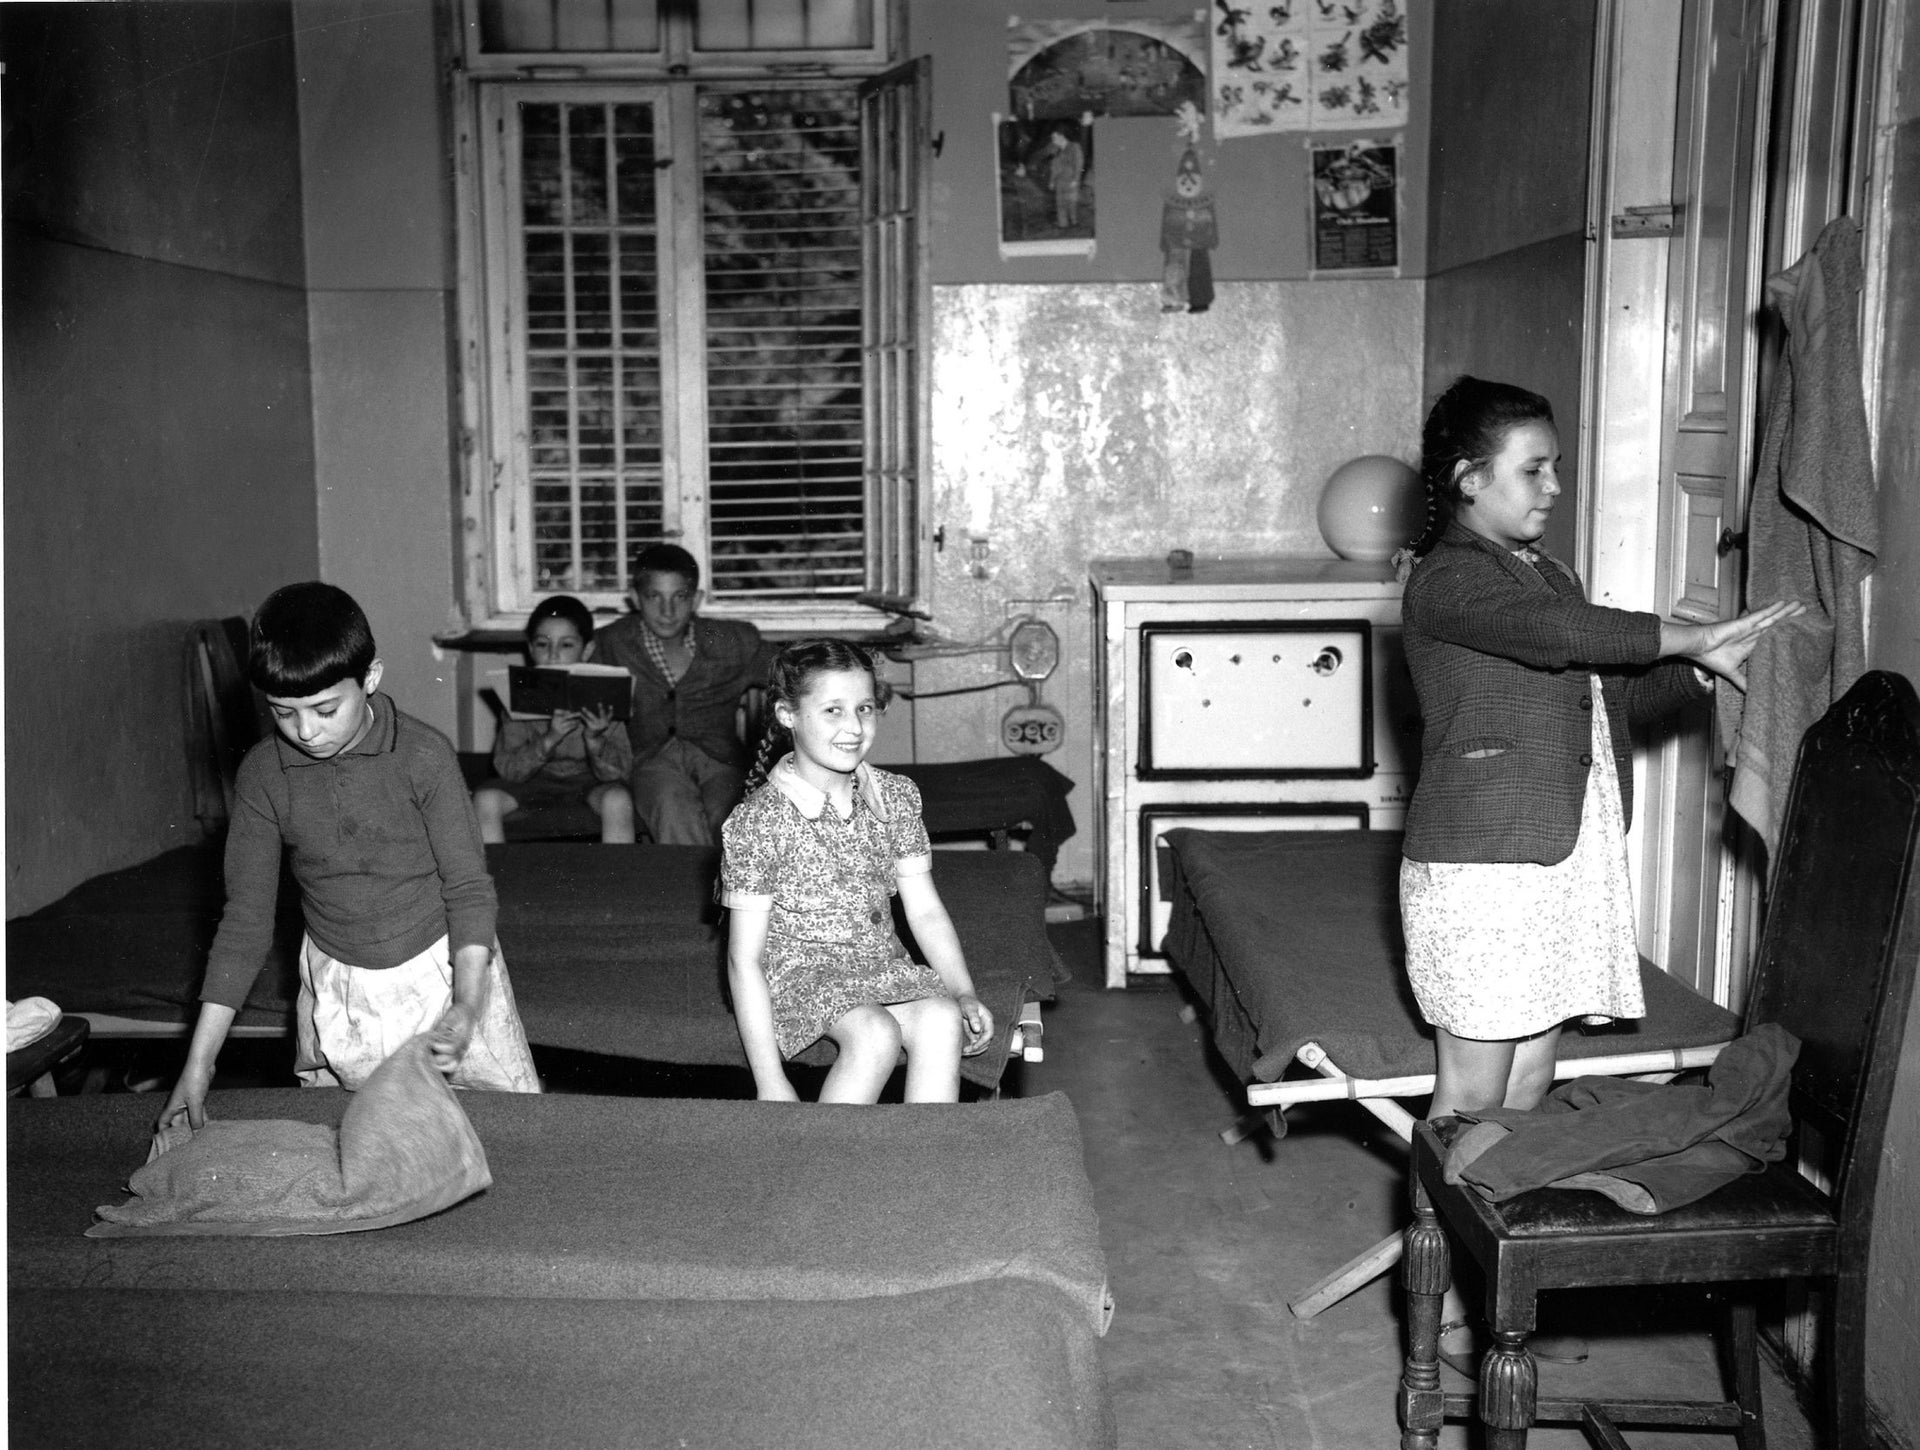 This group of Jewish orphans are seen in their room in the Duppel Center on Aug. 19, 1946, a displaced persons camp in suburban Berlin, Germany.